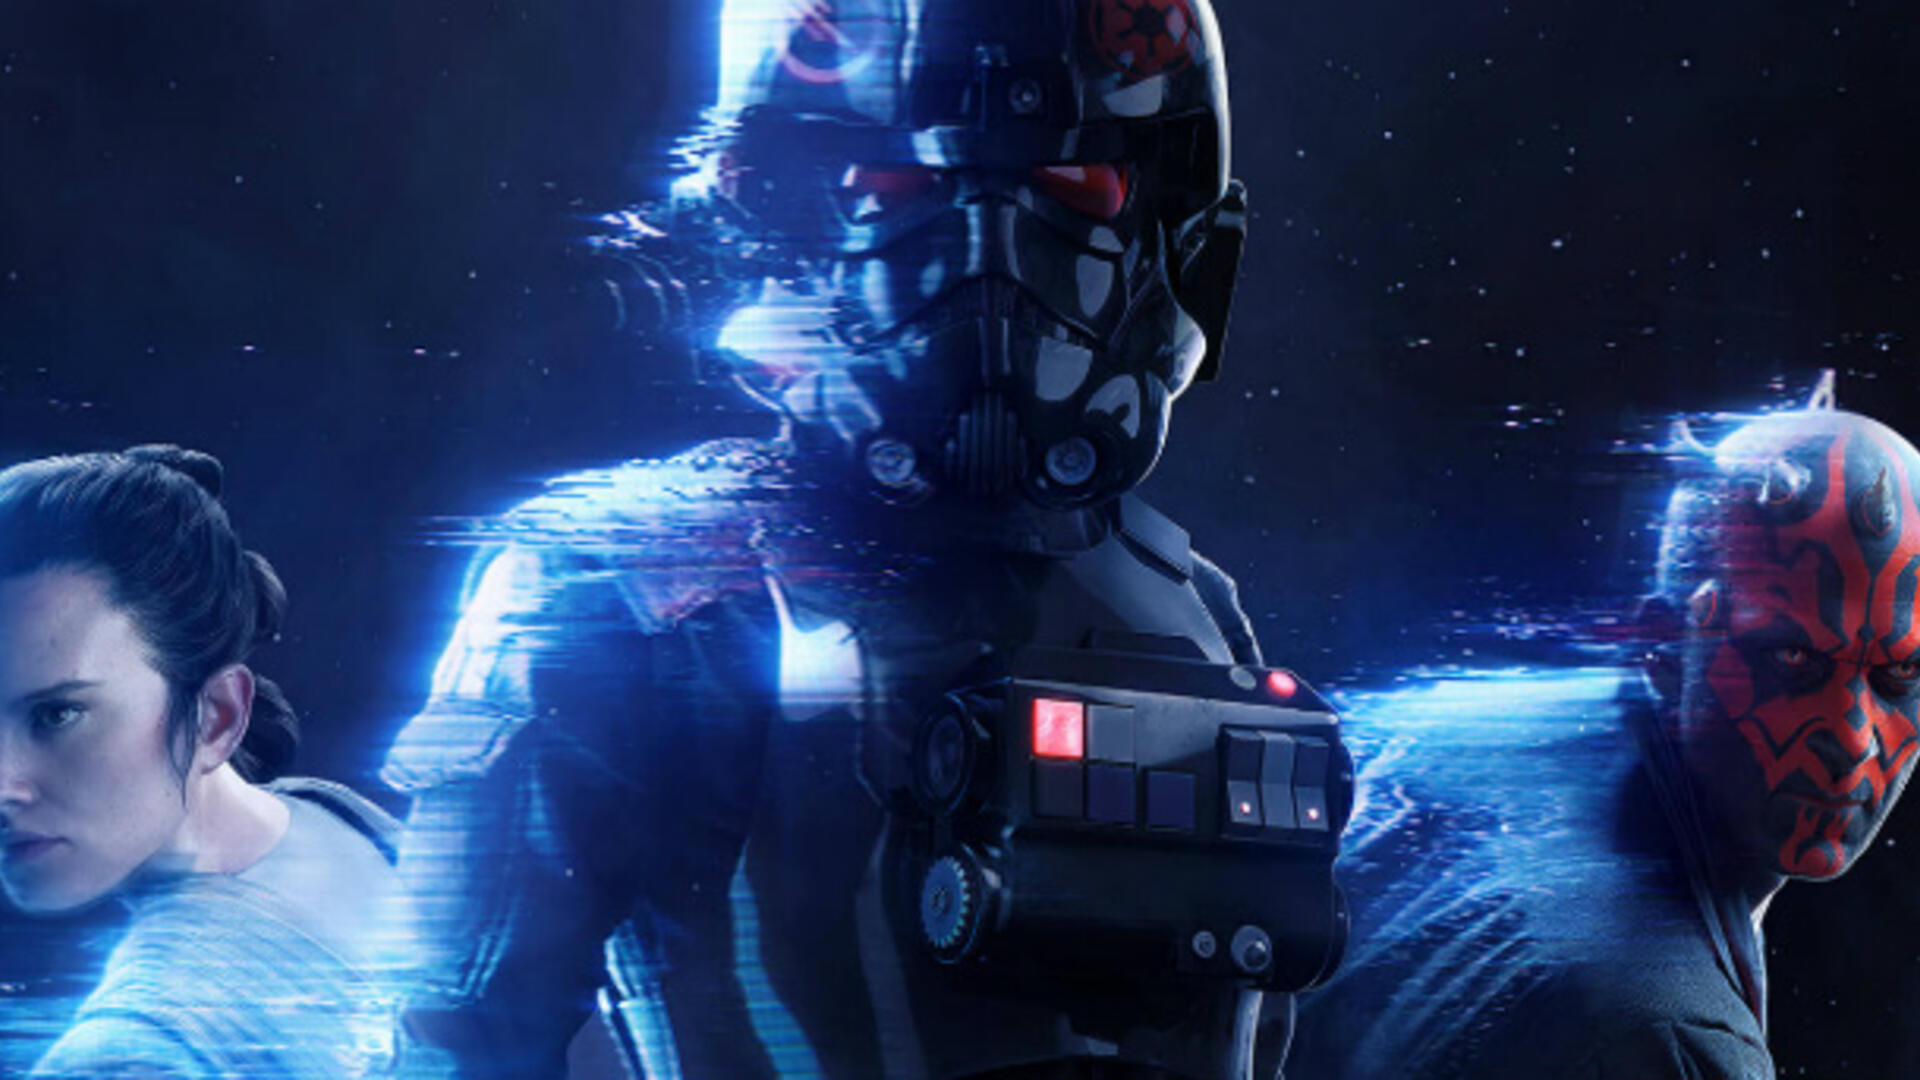 Star Wars: Battlefront II Focuses on The Empire on November 17